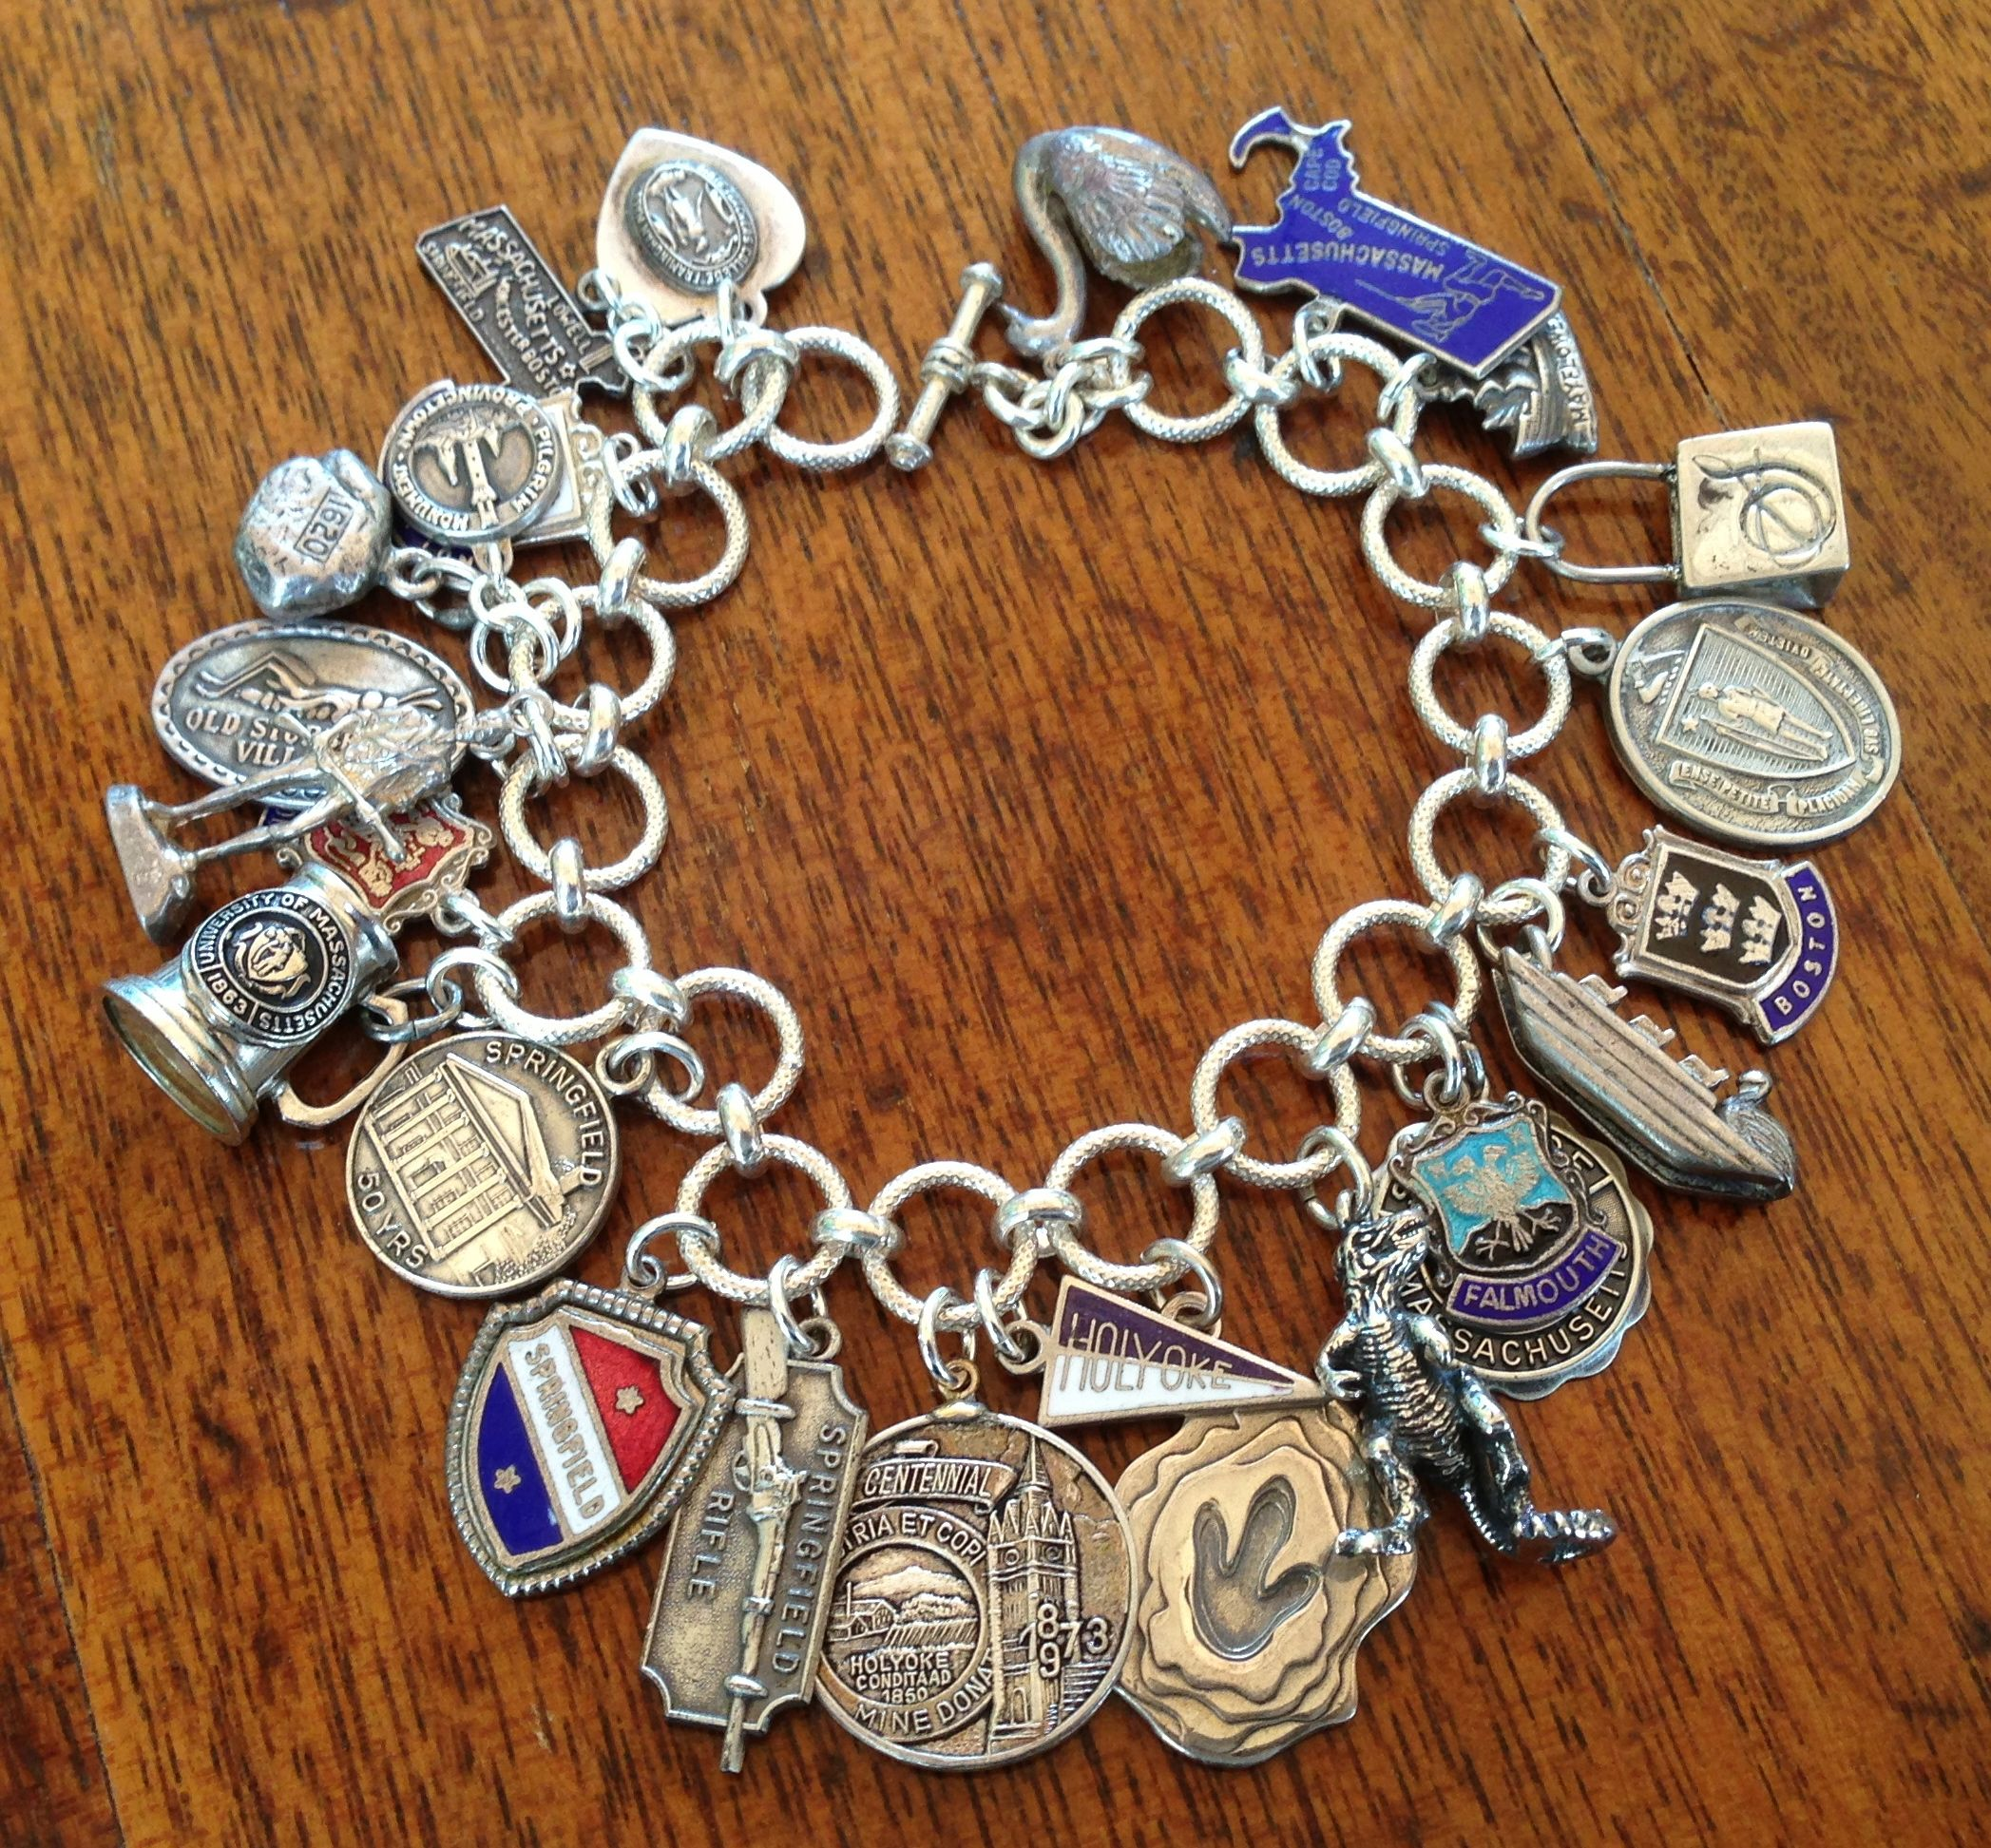 600 Simply Charming Iii Ideas In 2021 Charmed Charm Bracelet Charms And Charm Bracelets